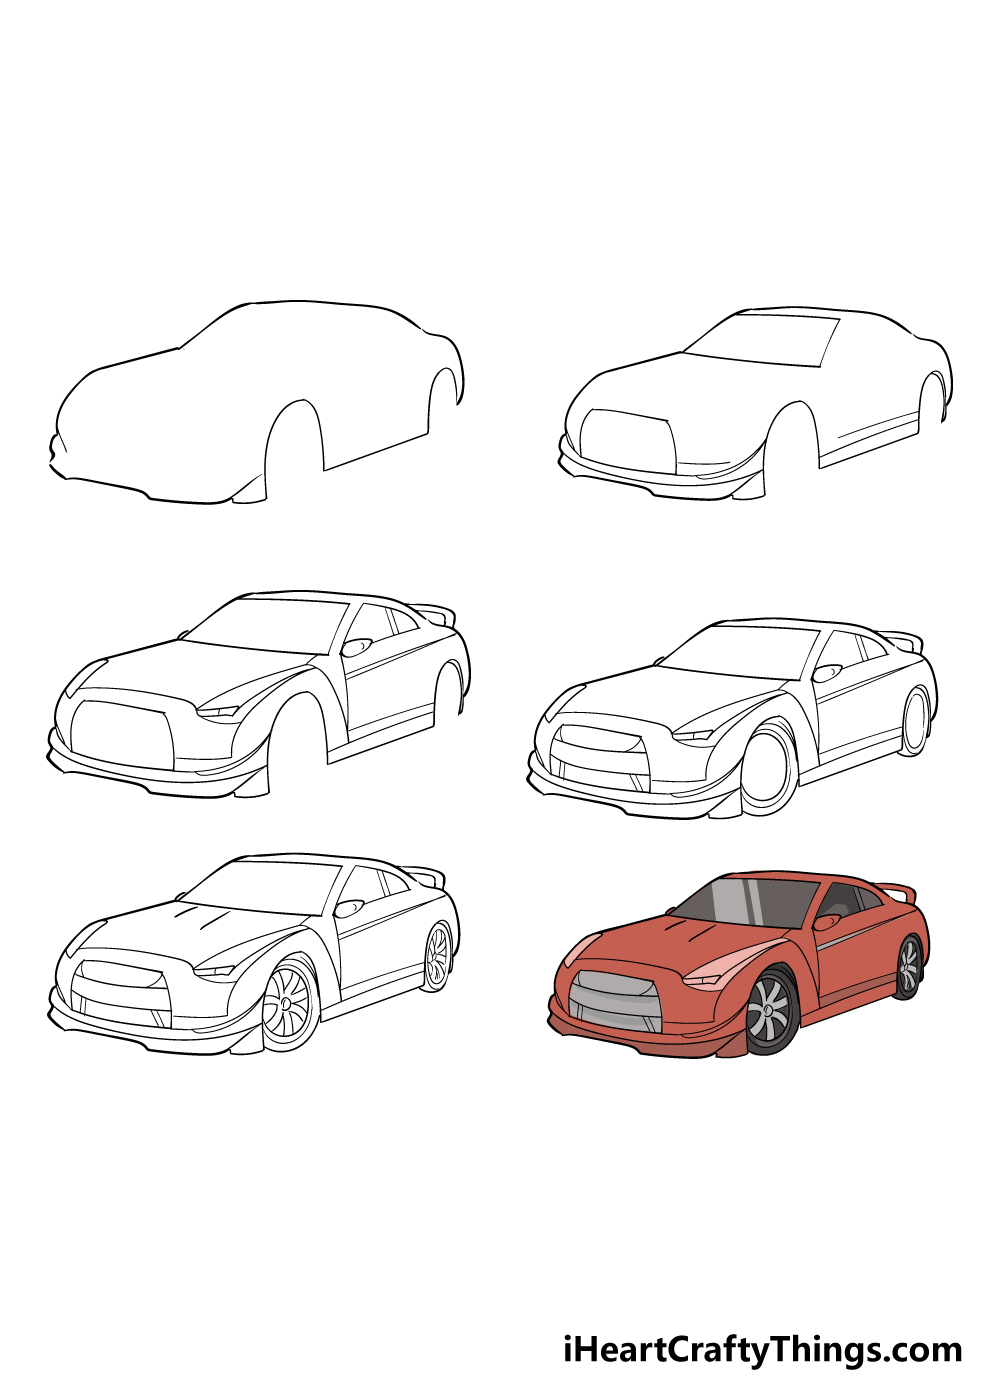 how to draw racecar in 6 steps